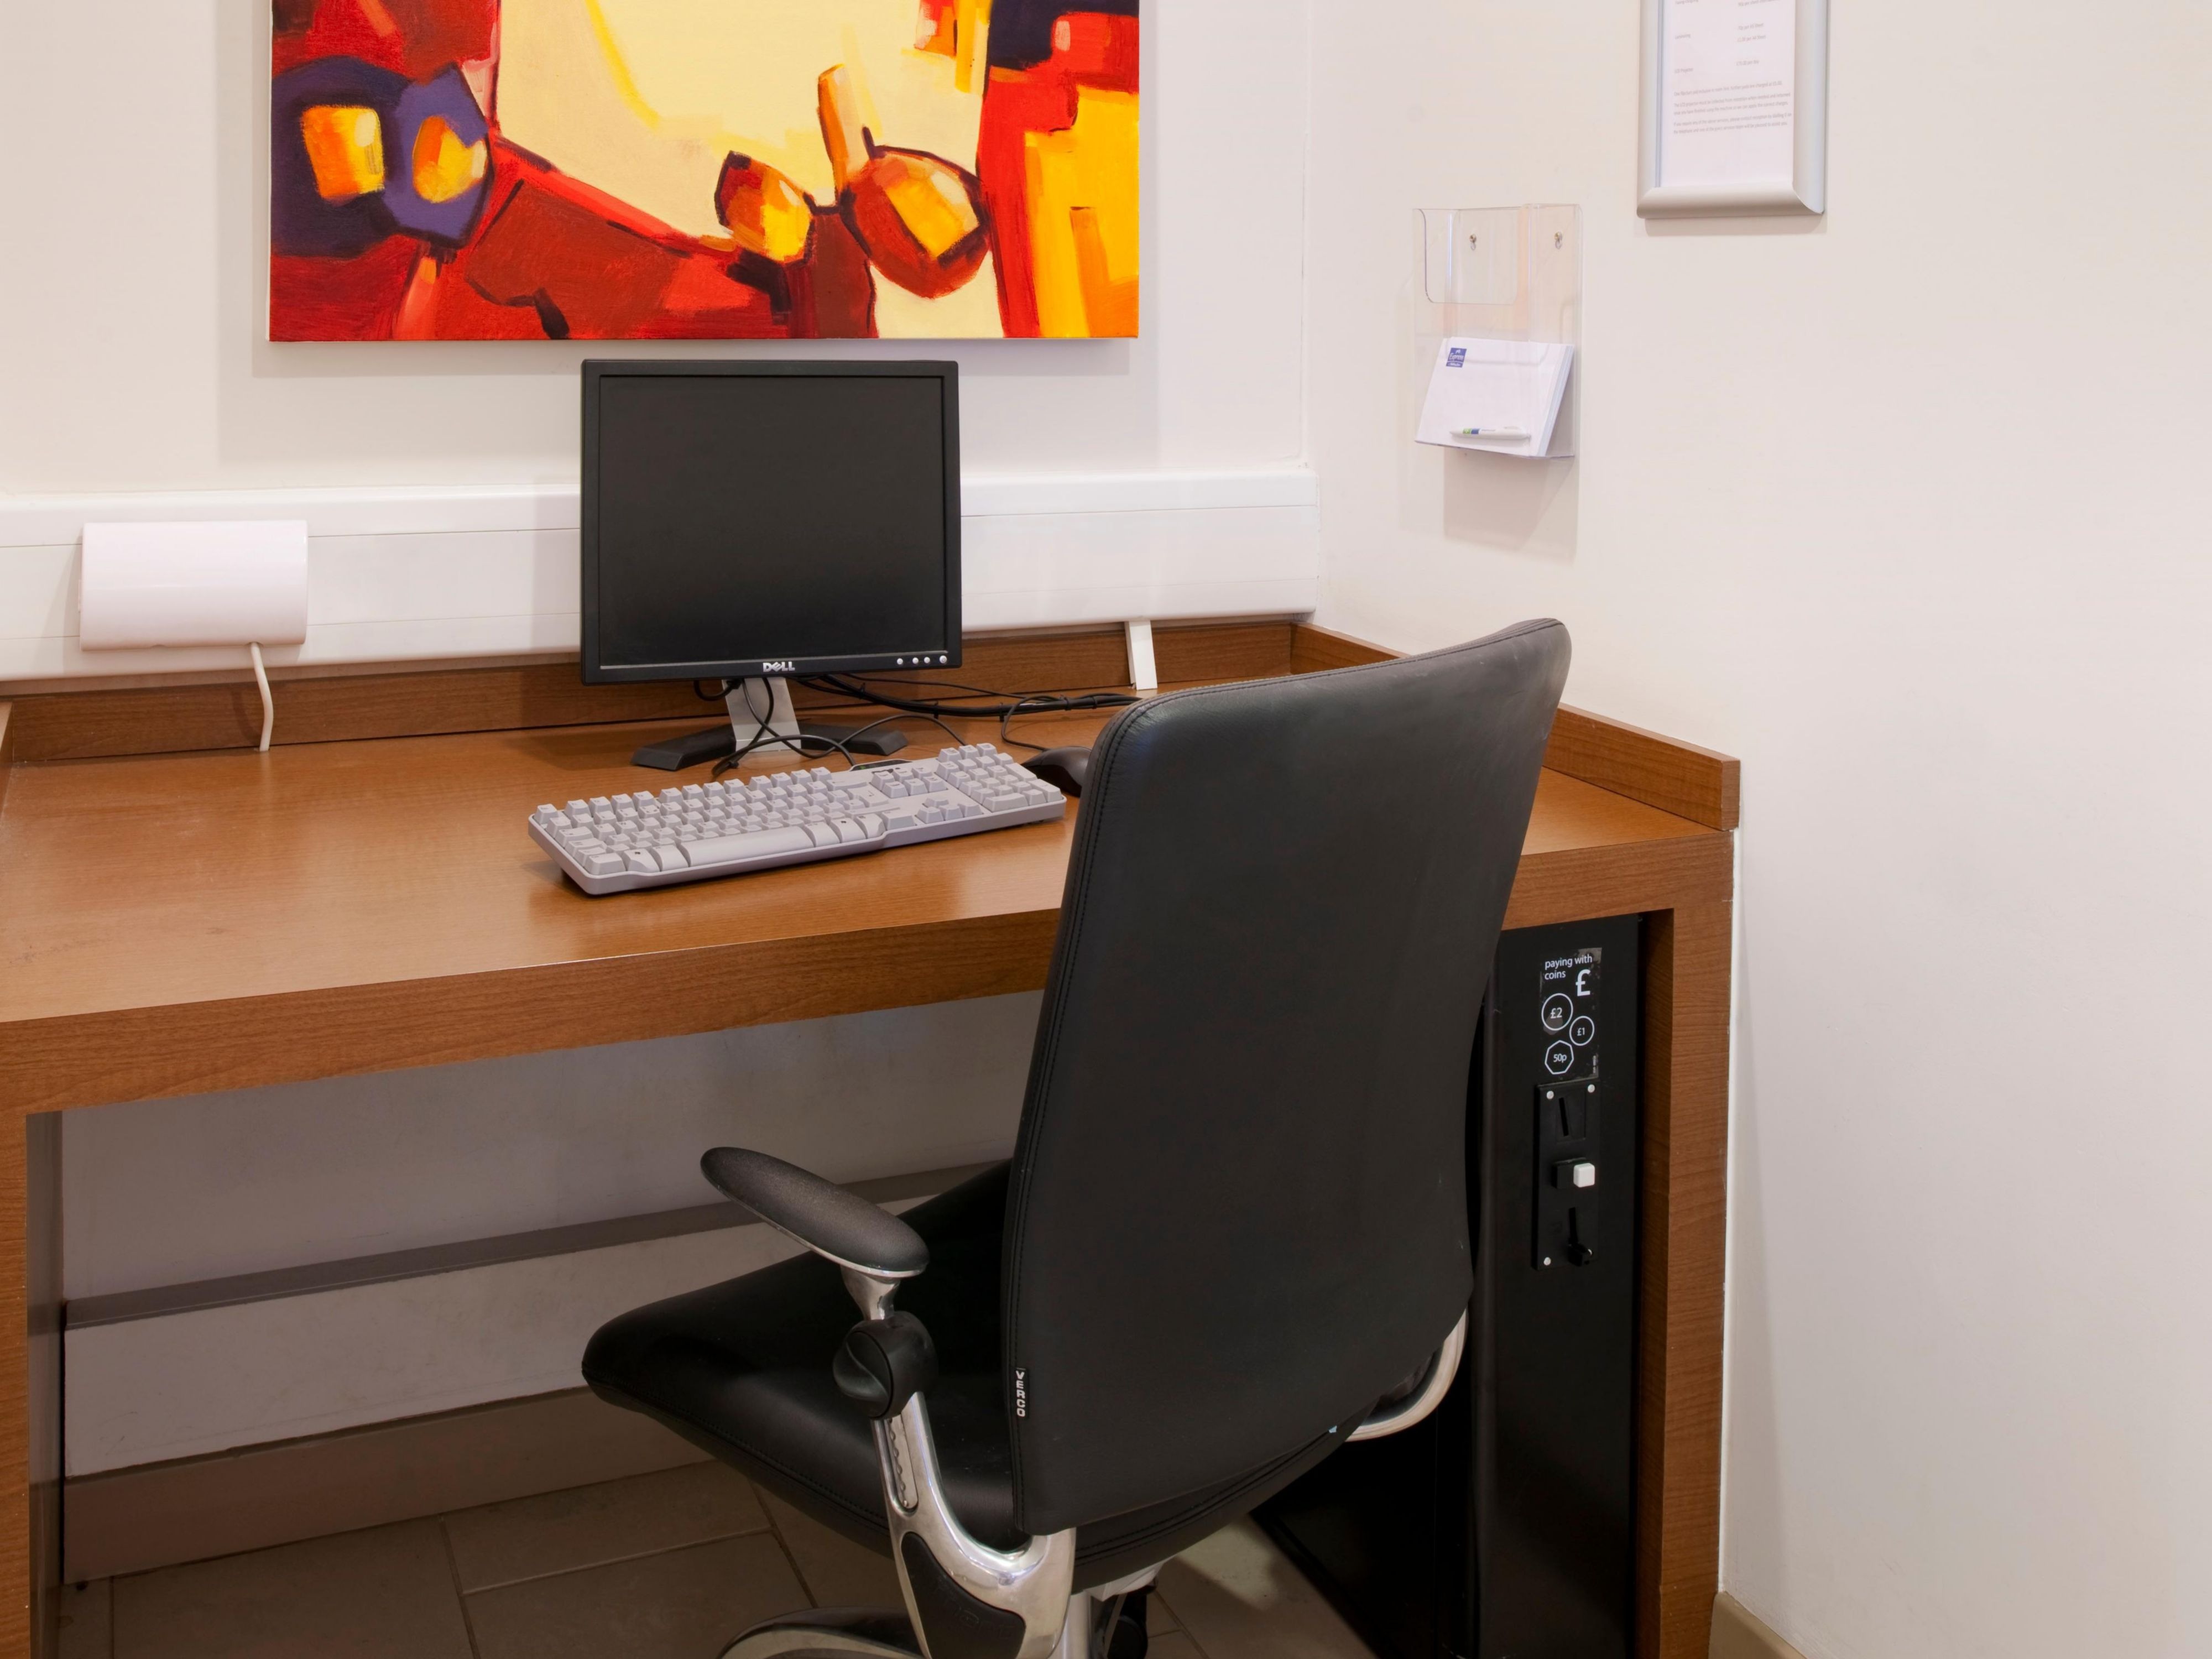 Our Business Centre is open 24/7 for your convenience